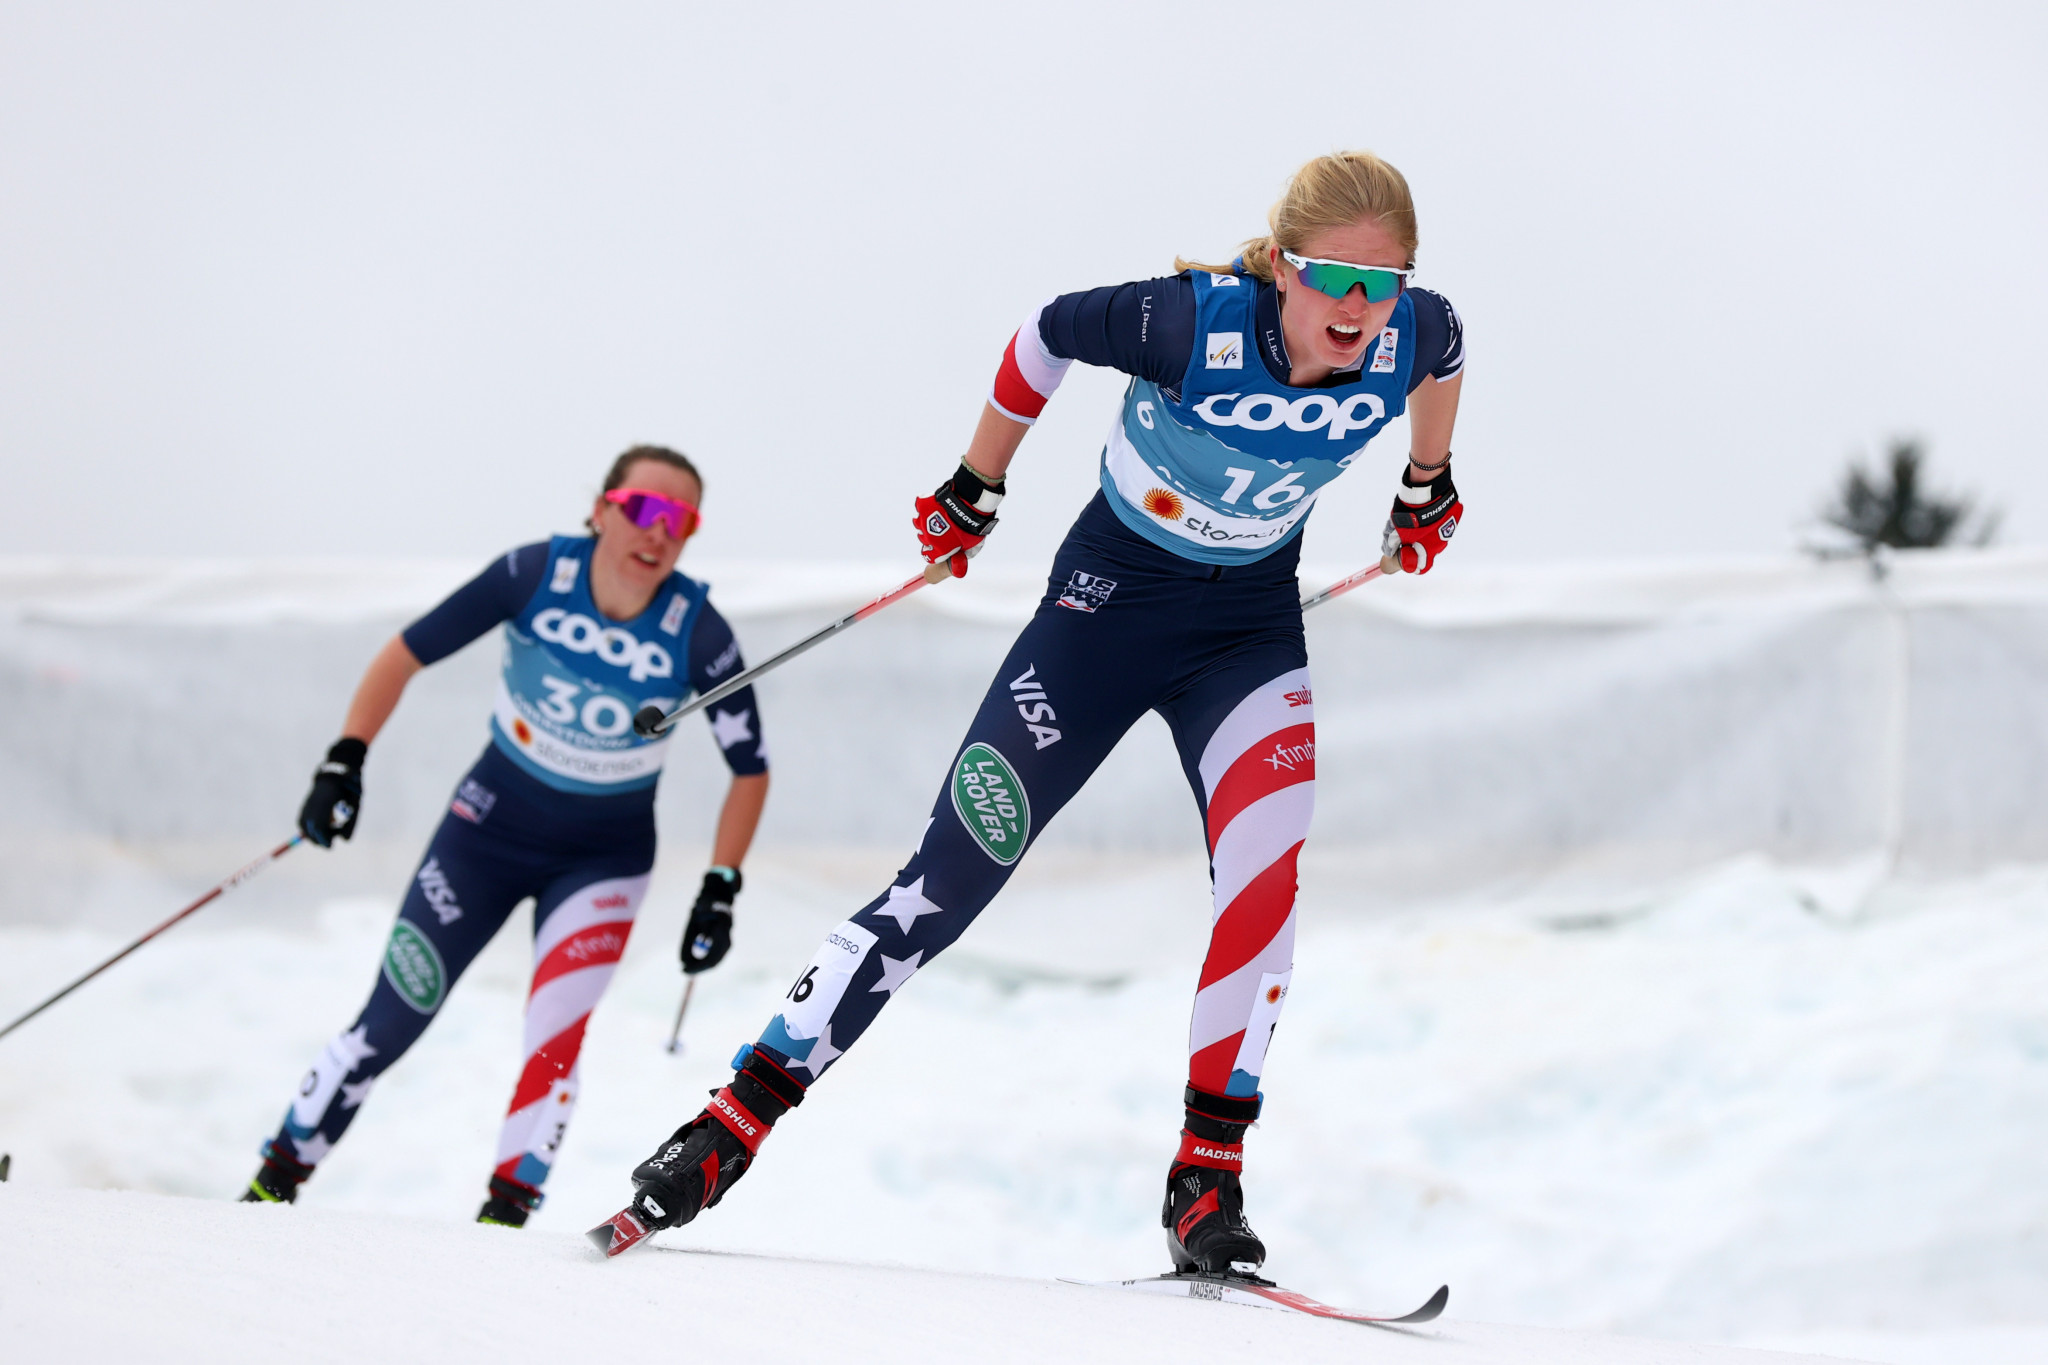 Hailey Swirbul, right, admitted the FIS Cross-Country World Cup is